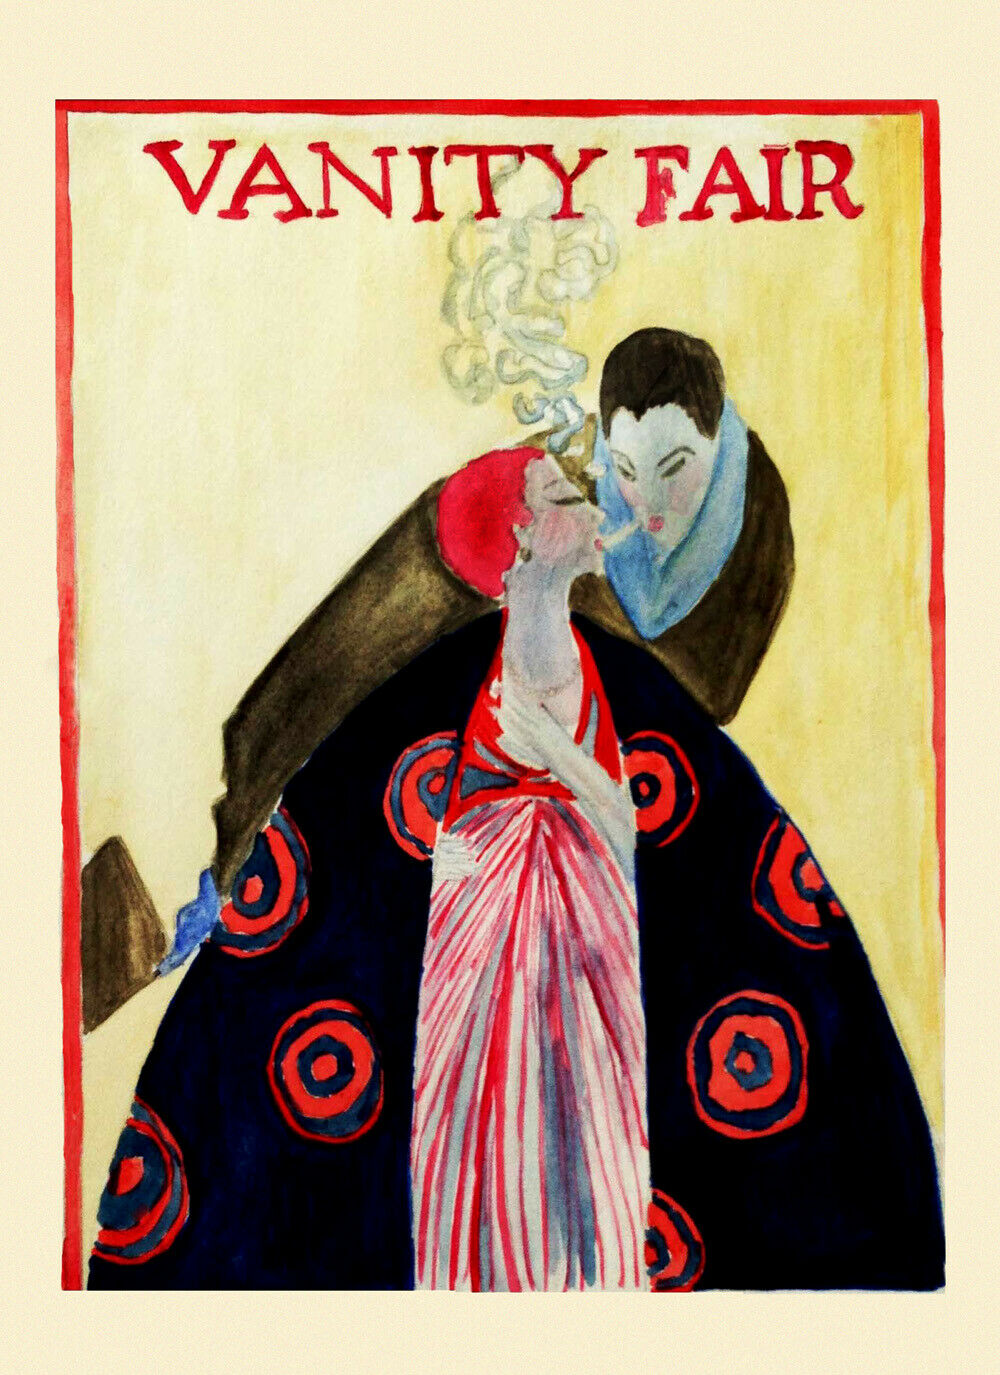 VANITY FAIR COVER FASHION COUPLE SMOKING CIGARETTE SMOKE VINTAGE POSTER REPRO